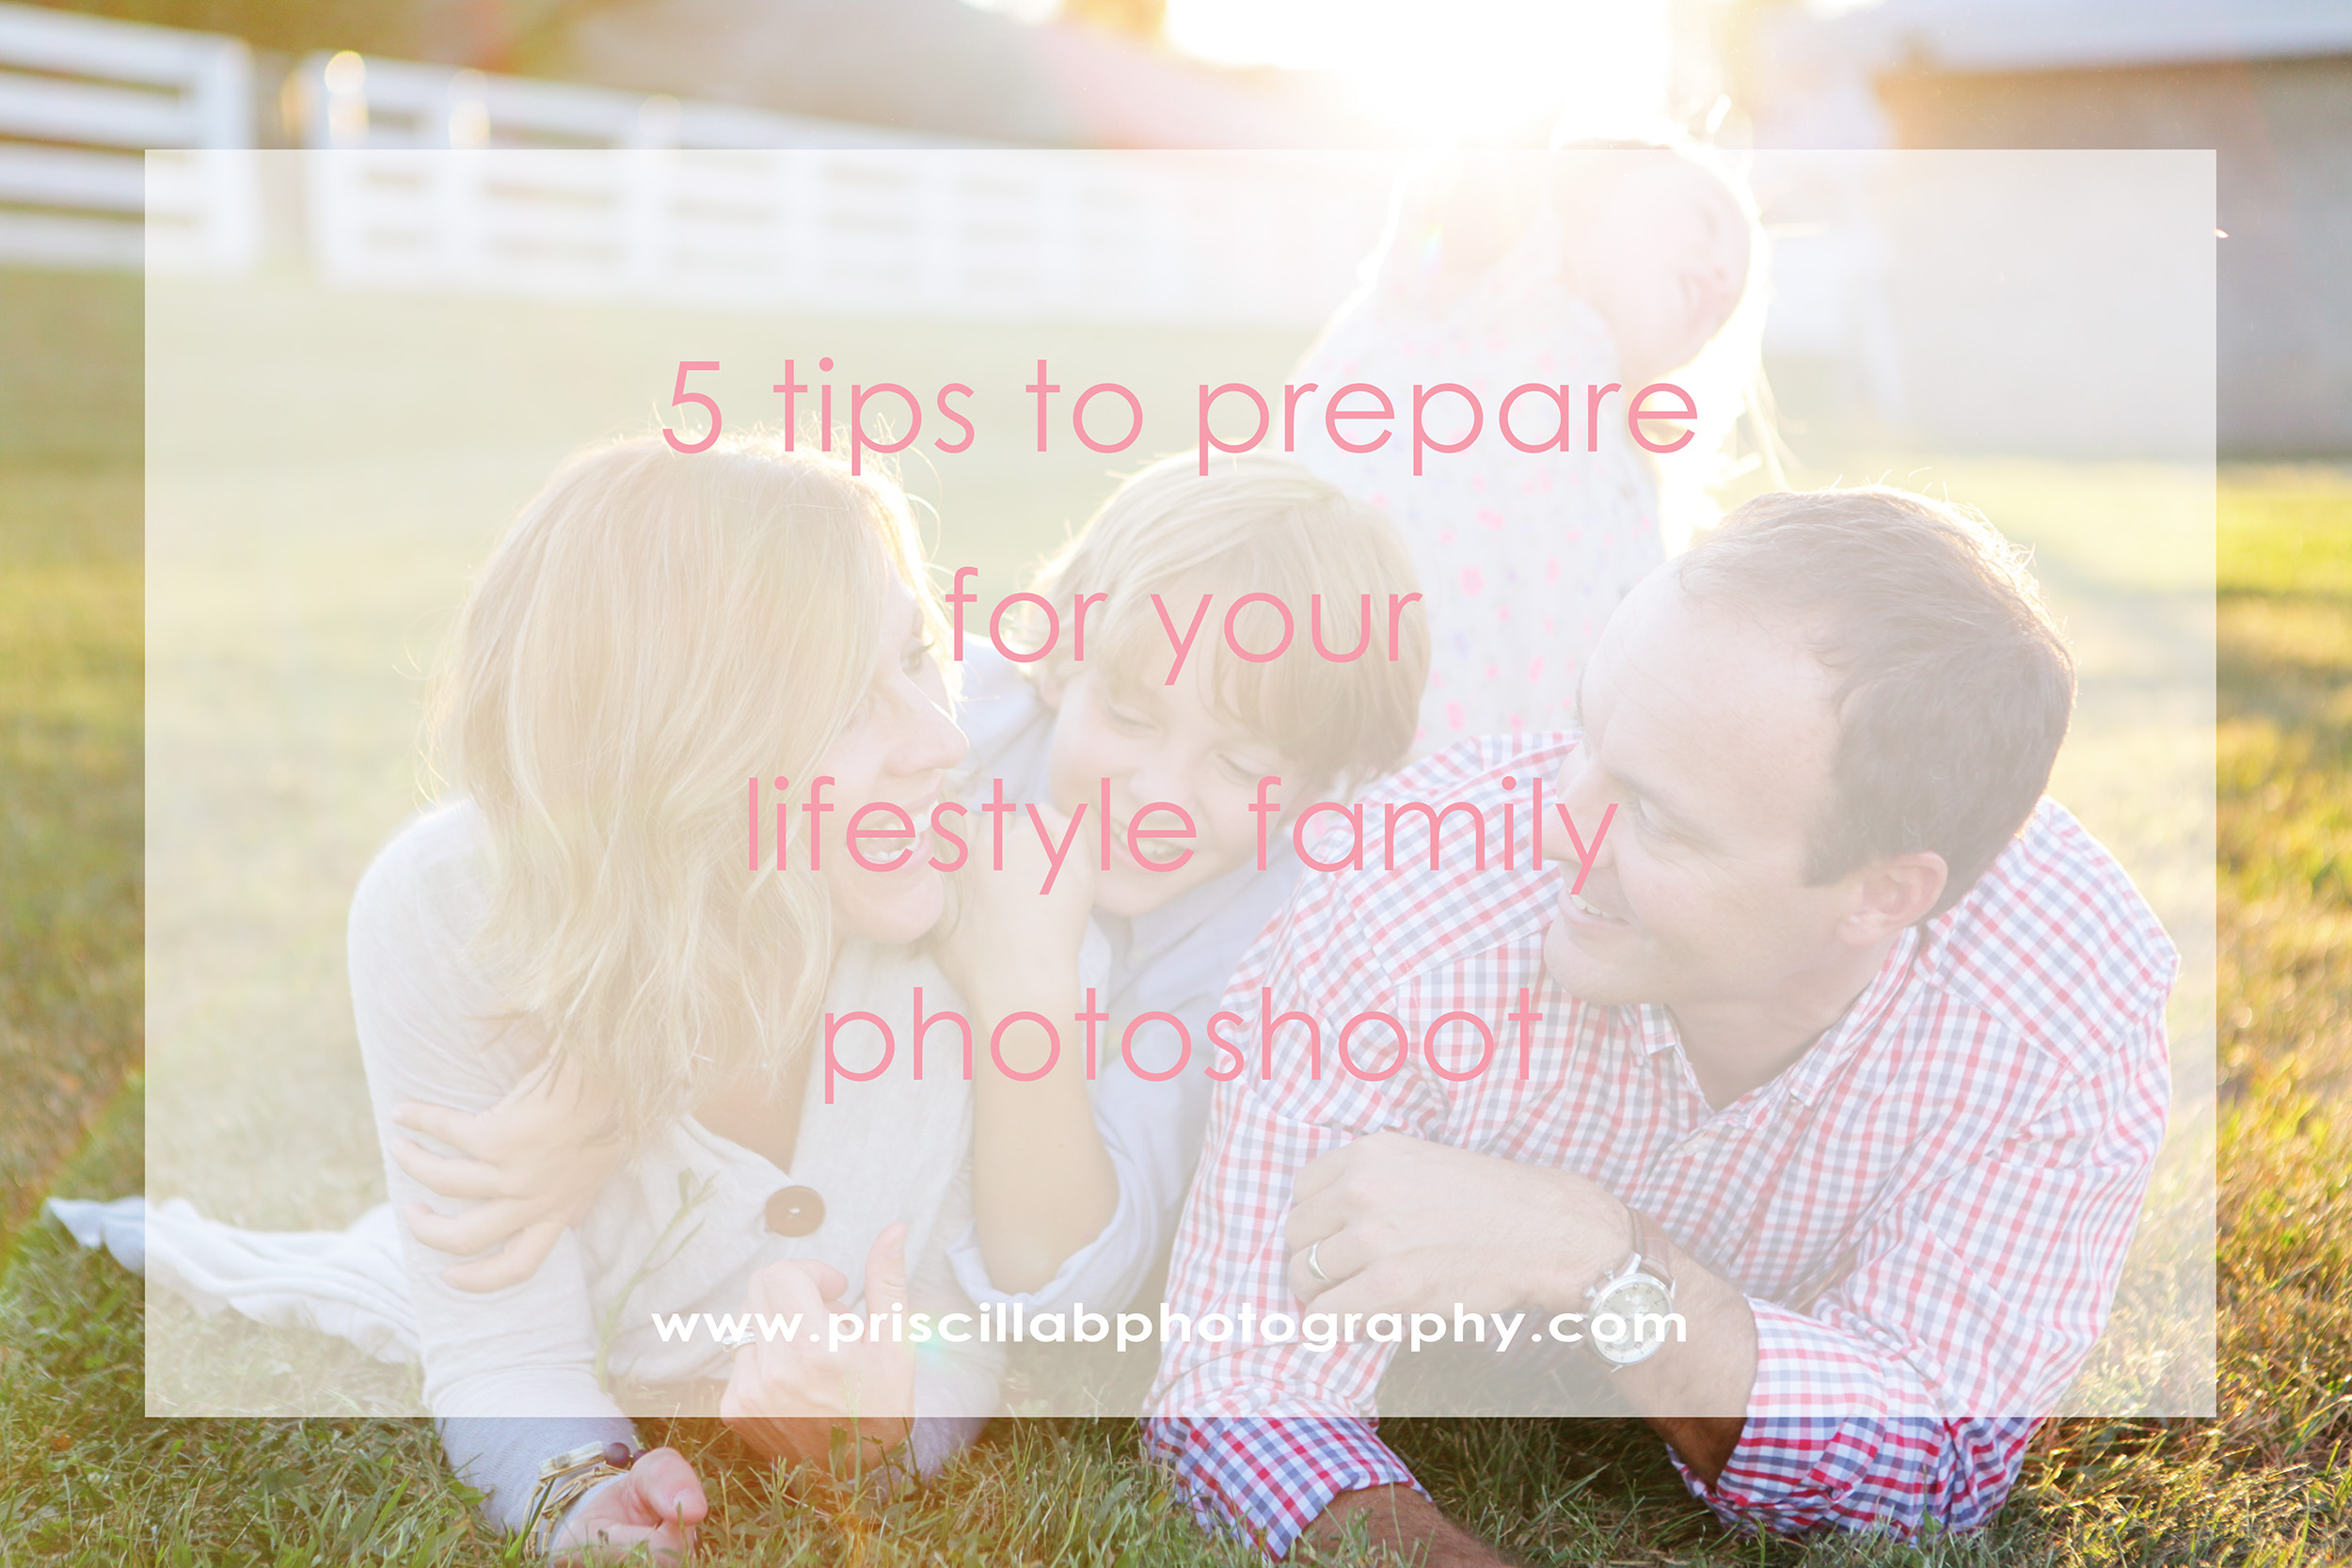 five-tips-to-prepare-for-your-lifestyle-family-photoshoot.jpg